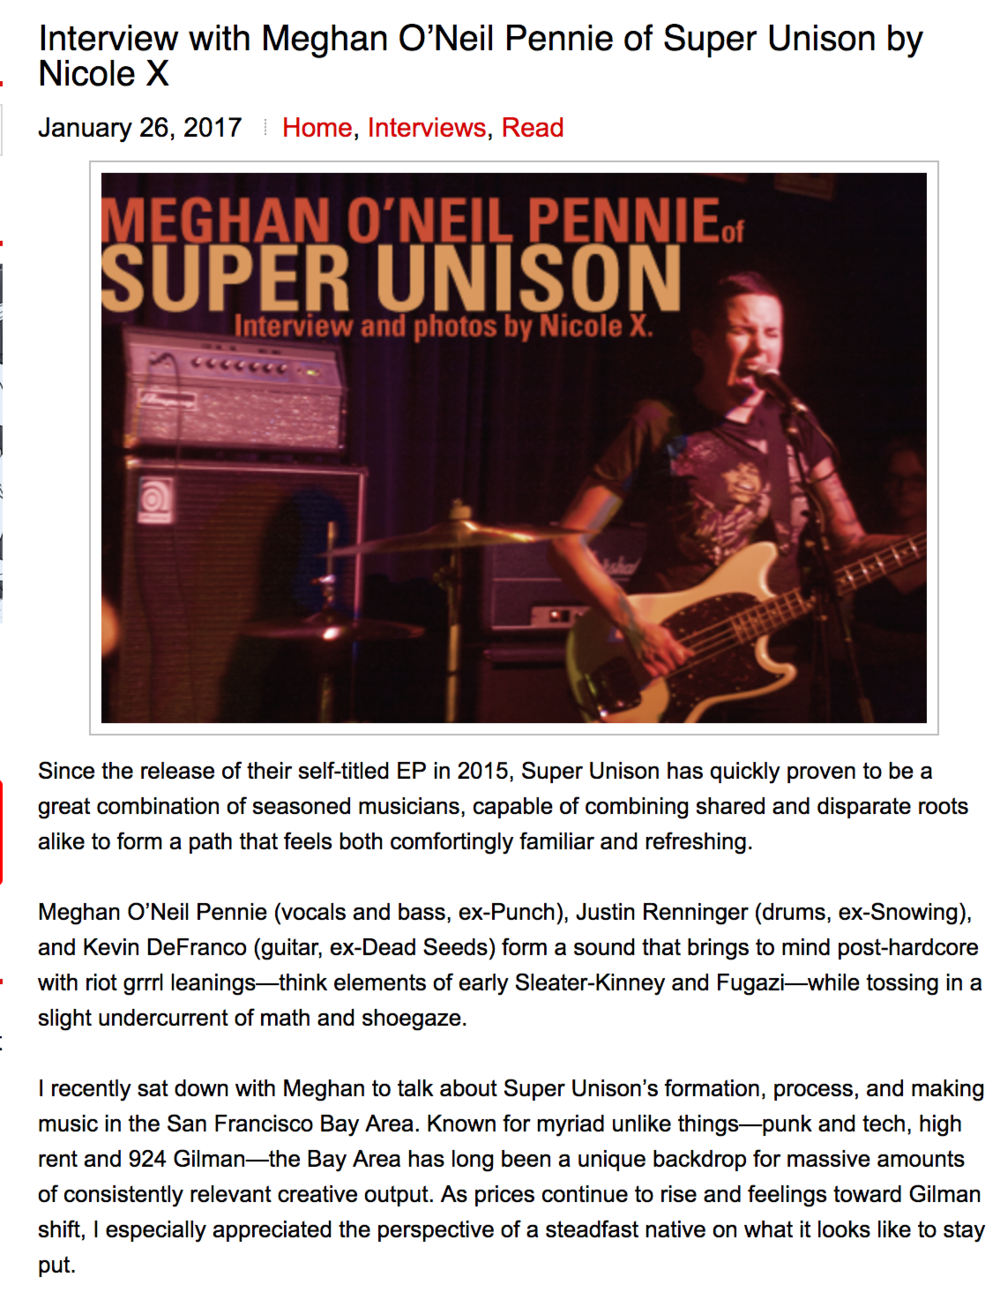 Meghan O'Neil Pennie of Super Unison, 2017: Razorcake